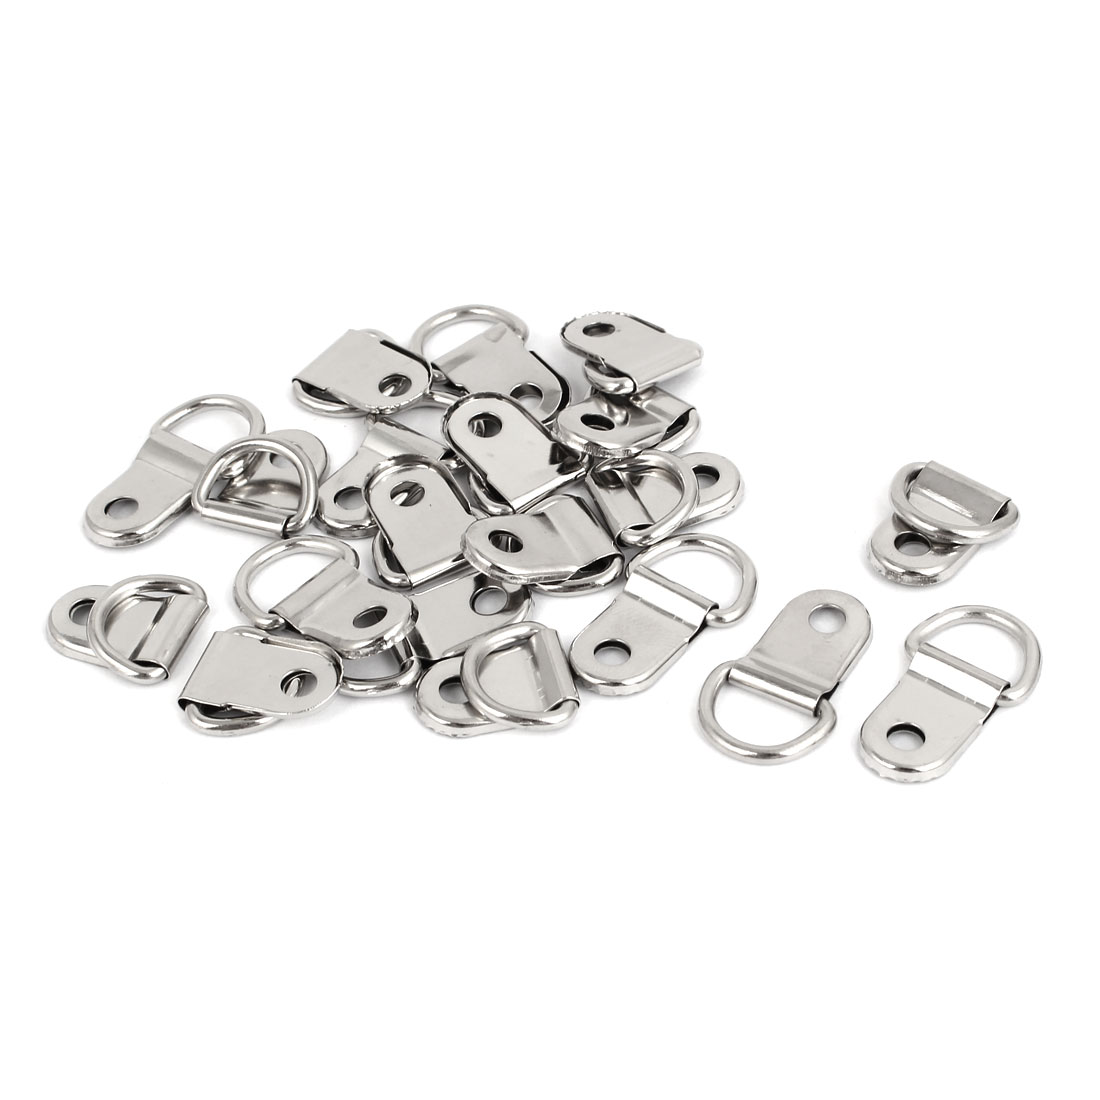 UXCELL High Quality 20Pcs lot 25x15mm Single Hole 3 5mm D Ring Picture Frame Hangers Hooks With Screws Silver Tone in Hooks from Home Improvement